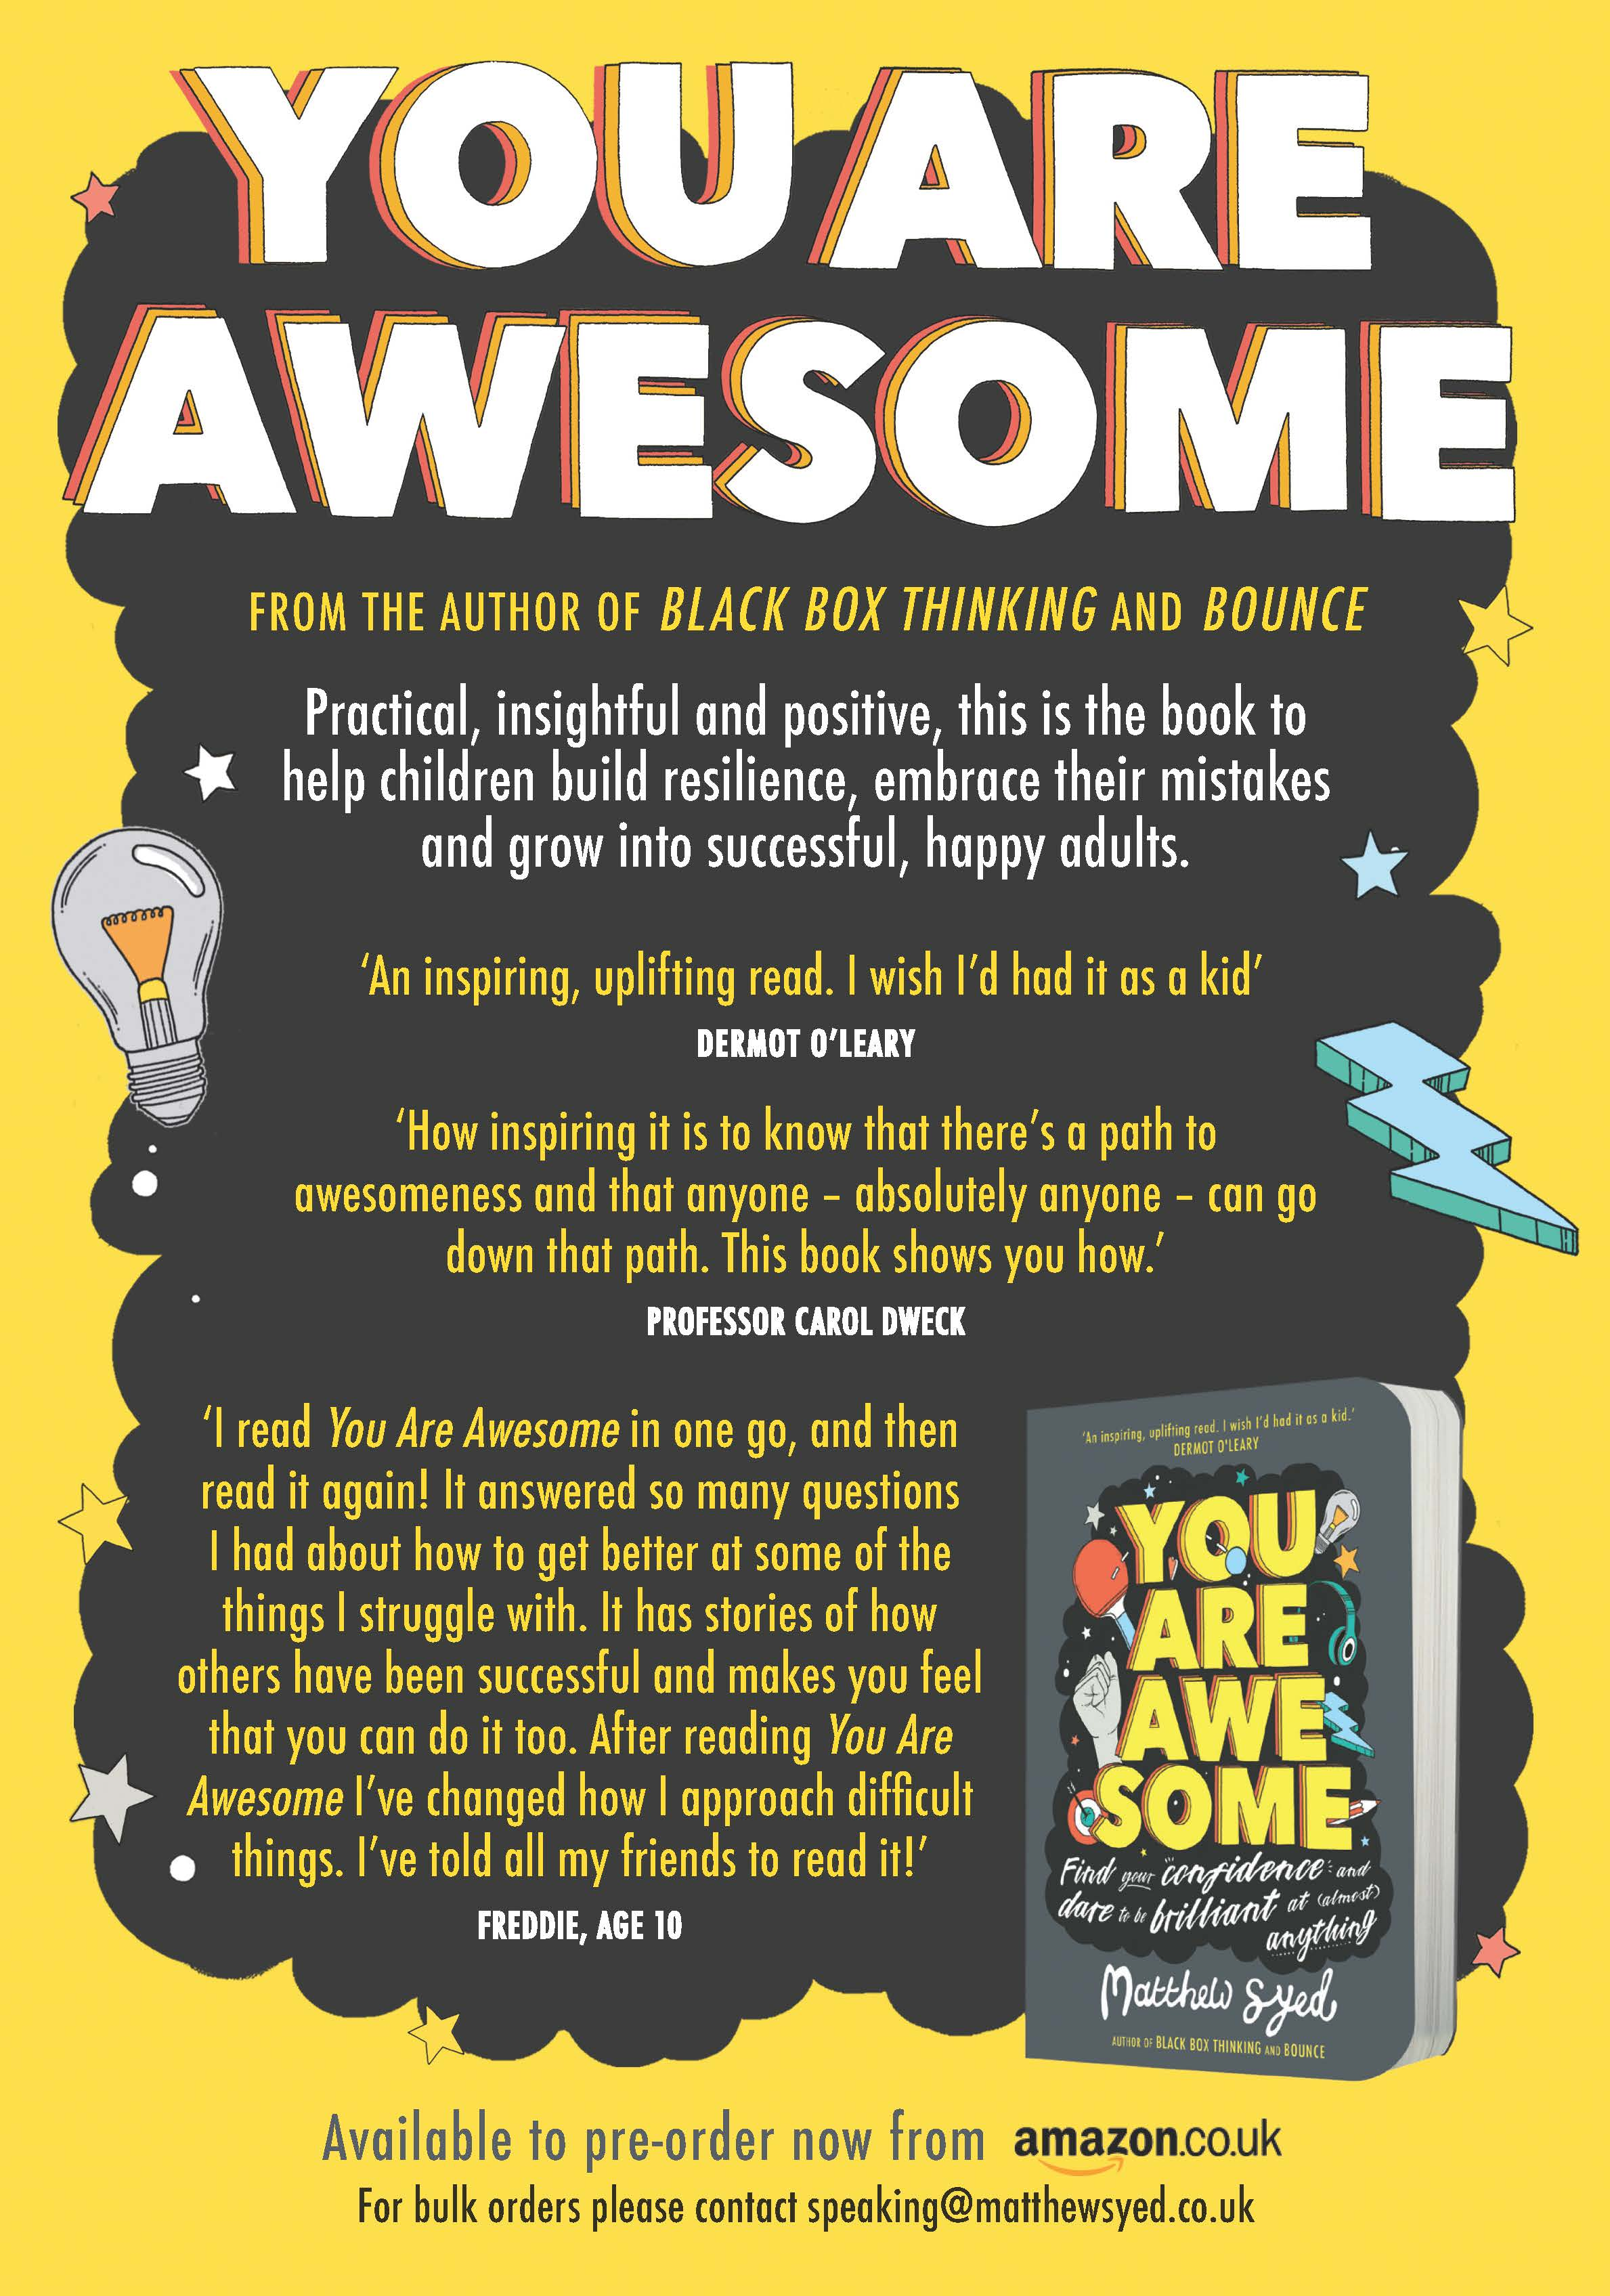 You Are Awesome - Available to pre-order now